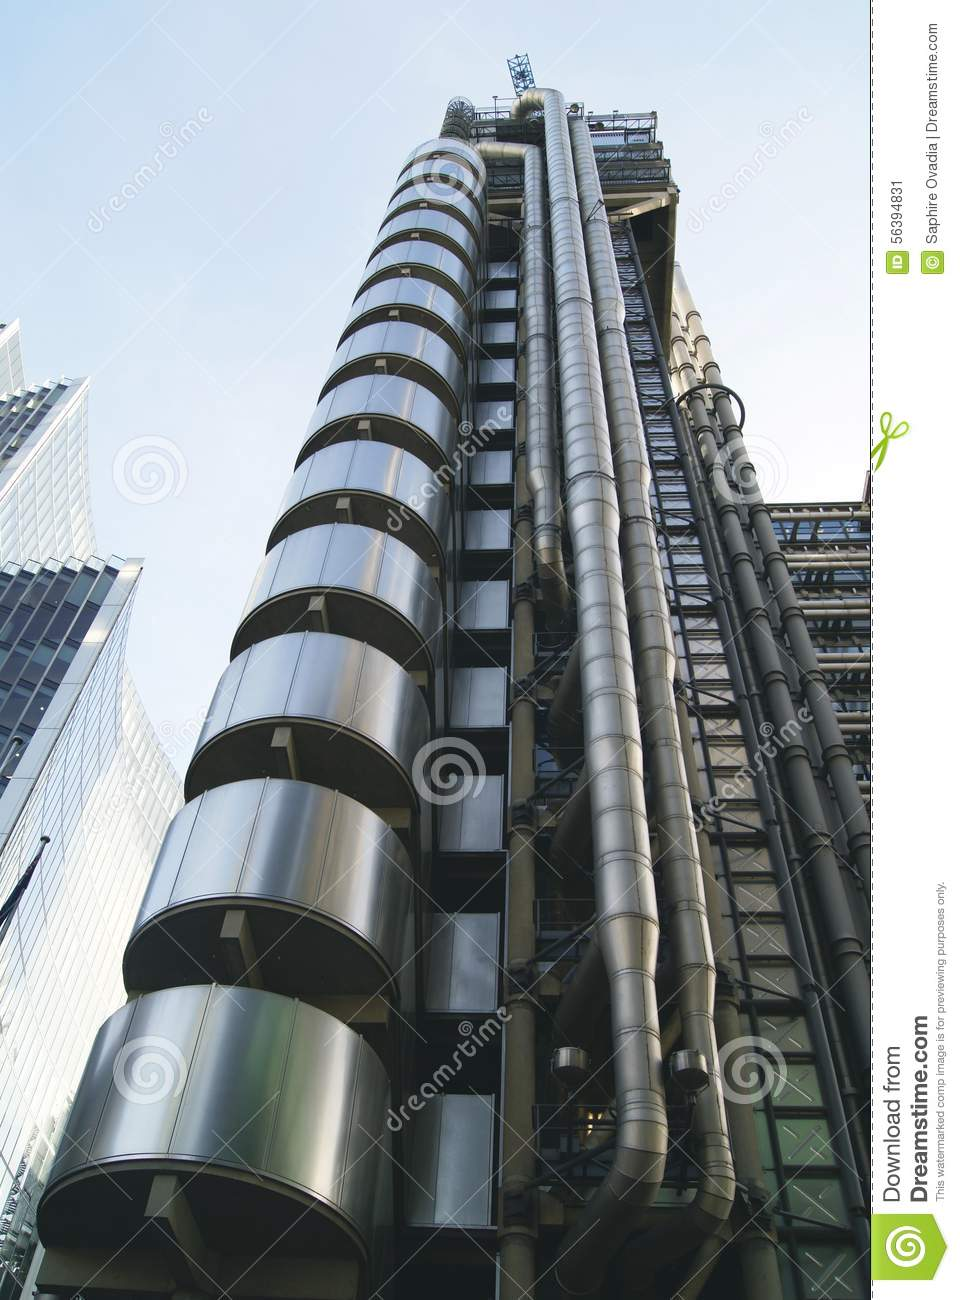 Lift Shaft Lift Exterior Fa Ade Stainless Steel Lift Stock Image Image 56394831